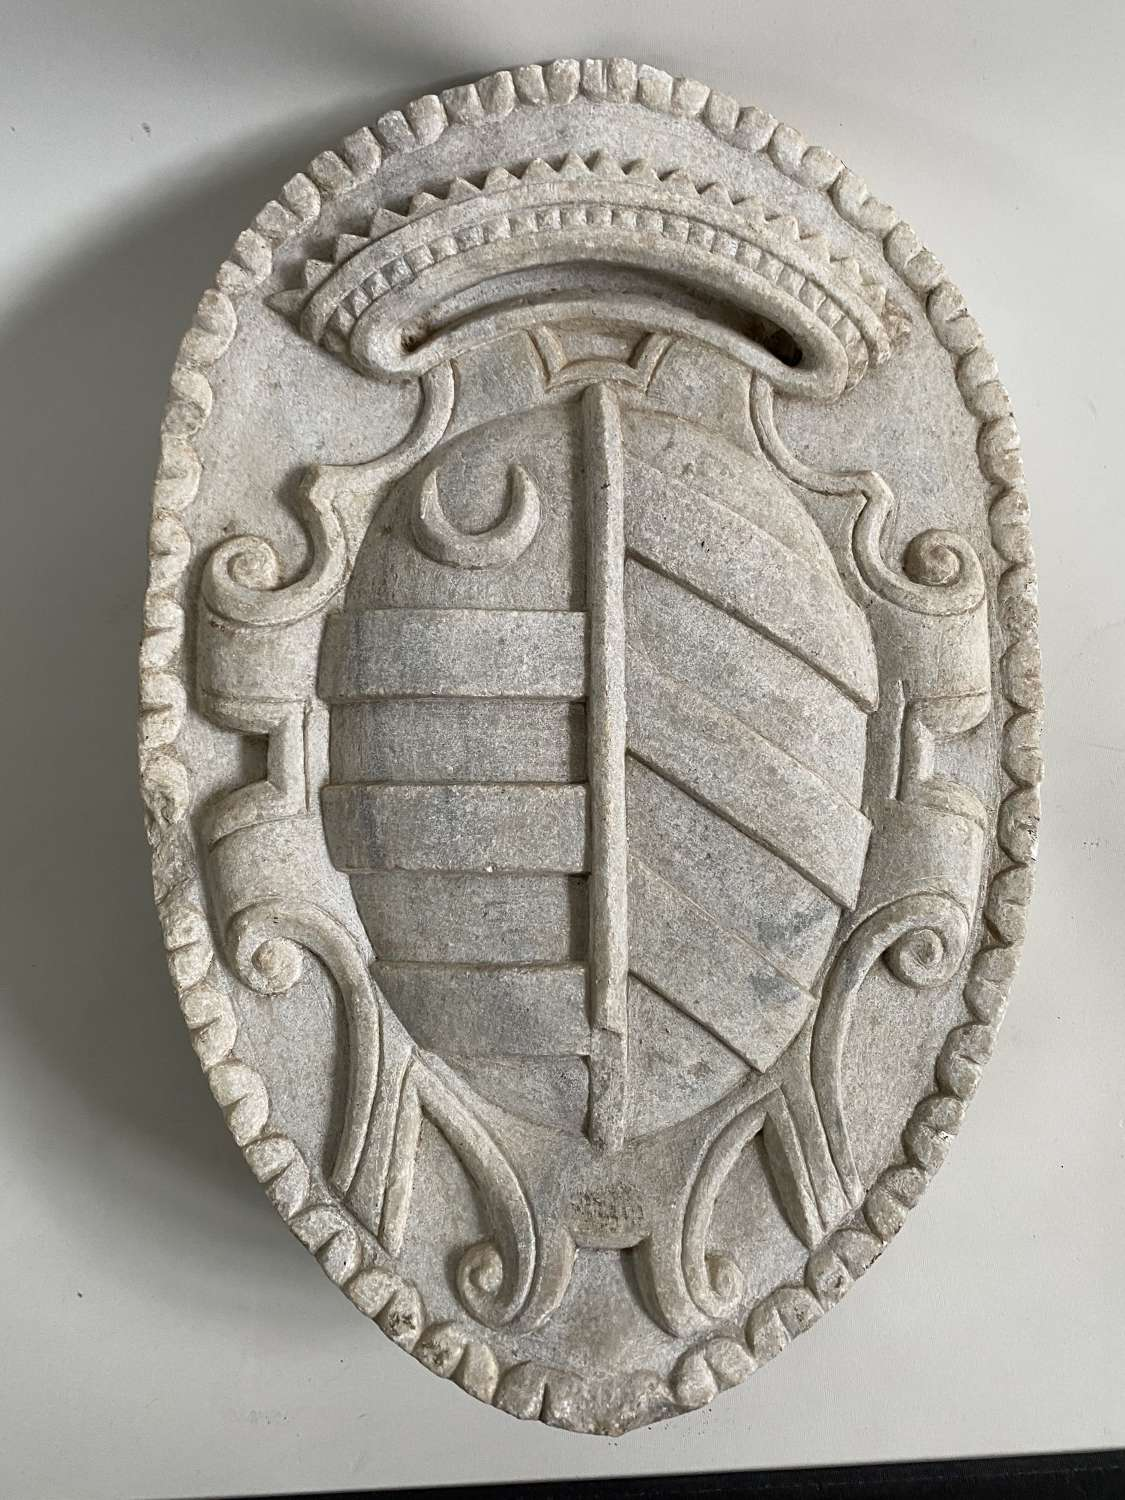 Sculpted coat of arms